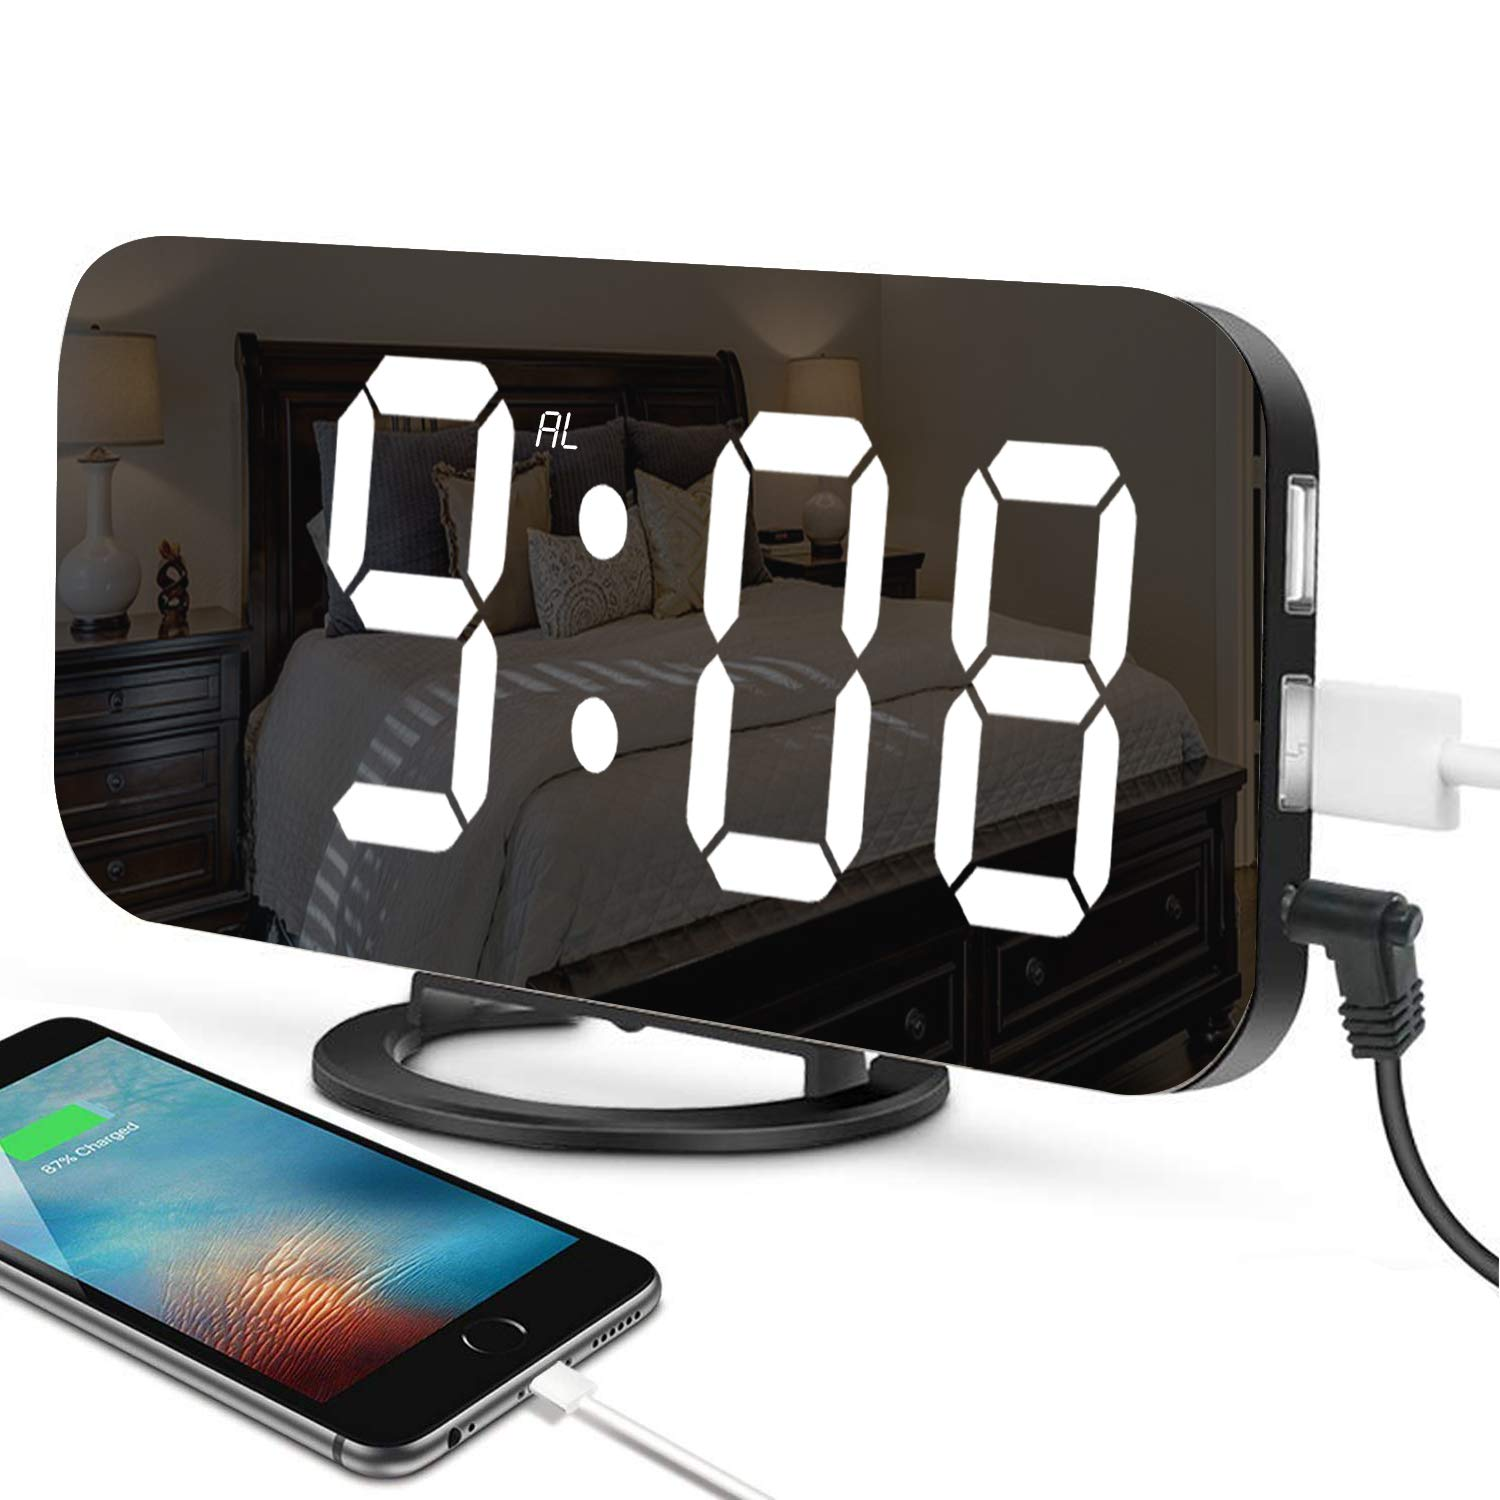 Alarm Clock, MJDUO Multifunction Led Digital Clock with Dual USB Port and Charger, 6.5